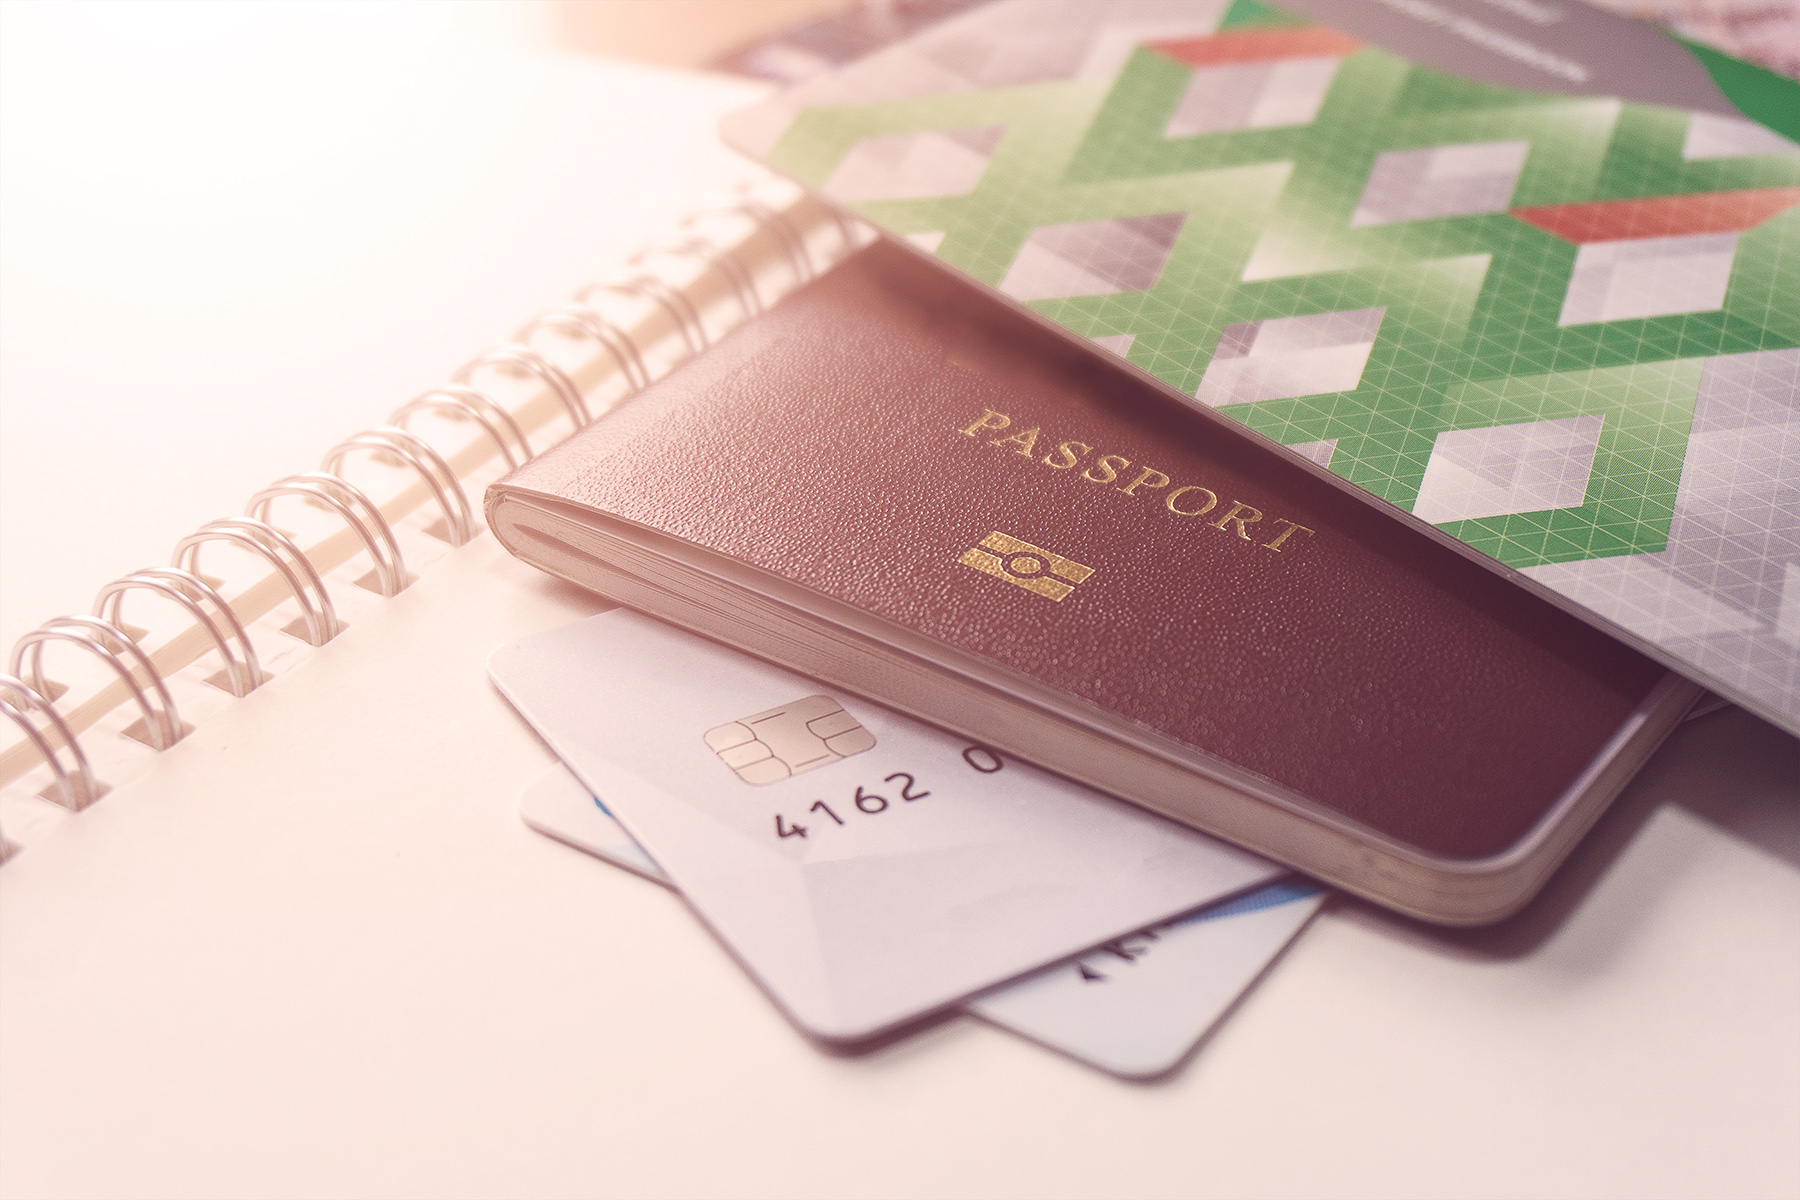 moving out checklist: passport and ids